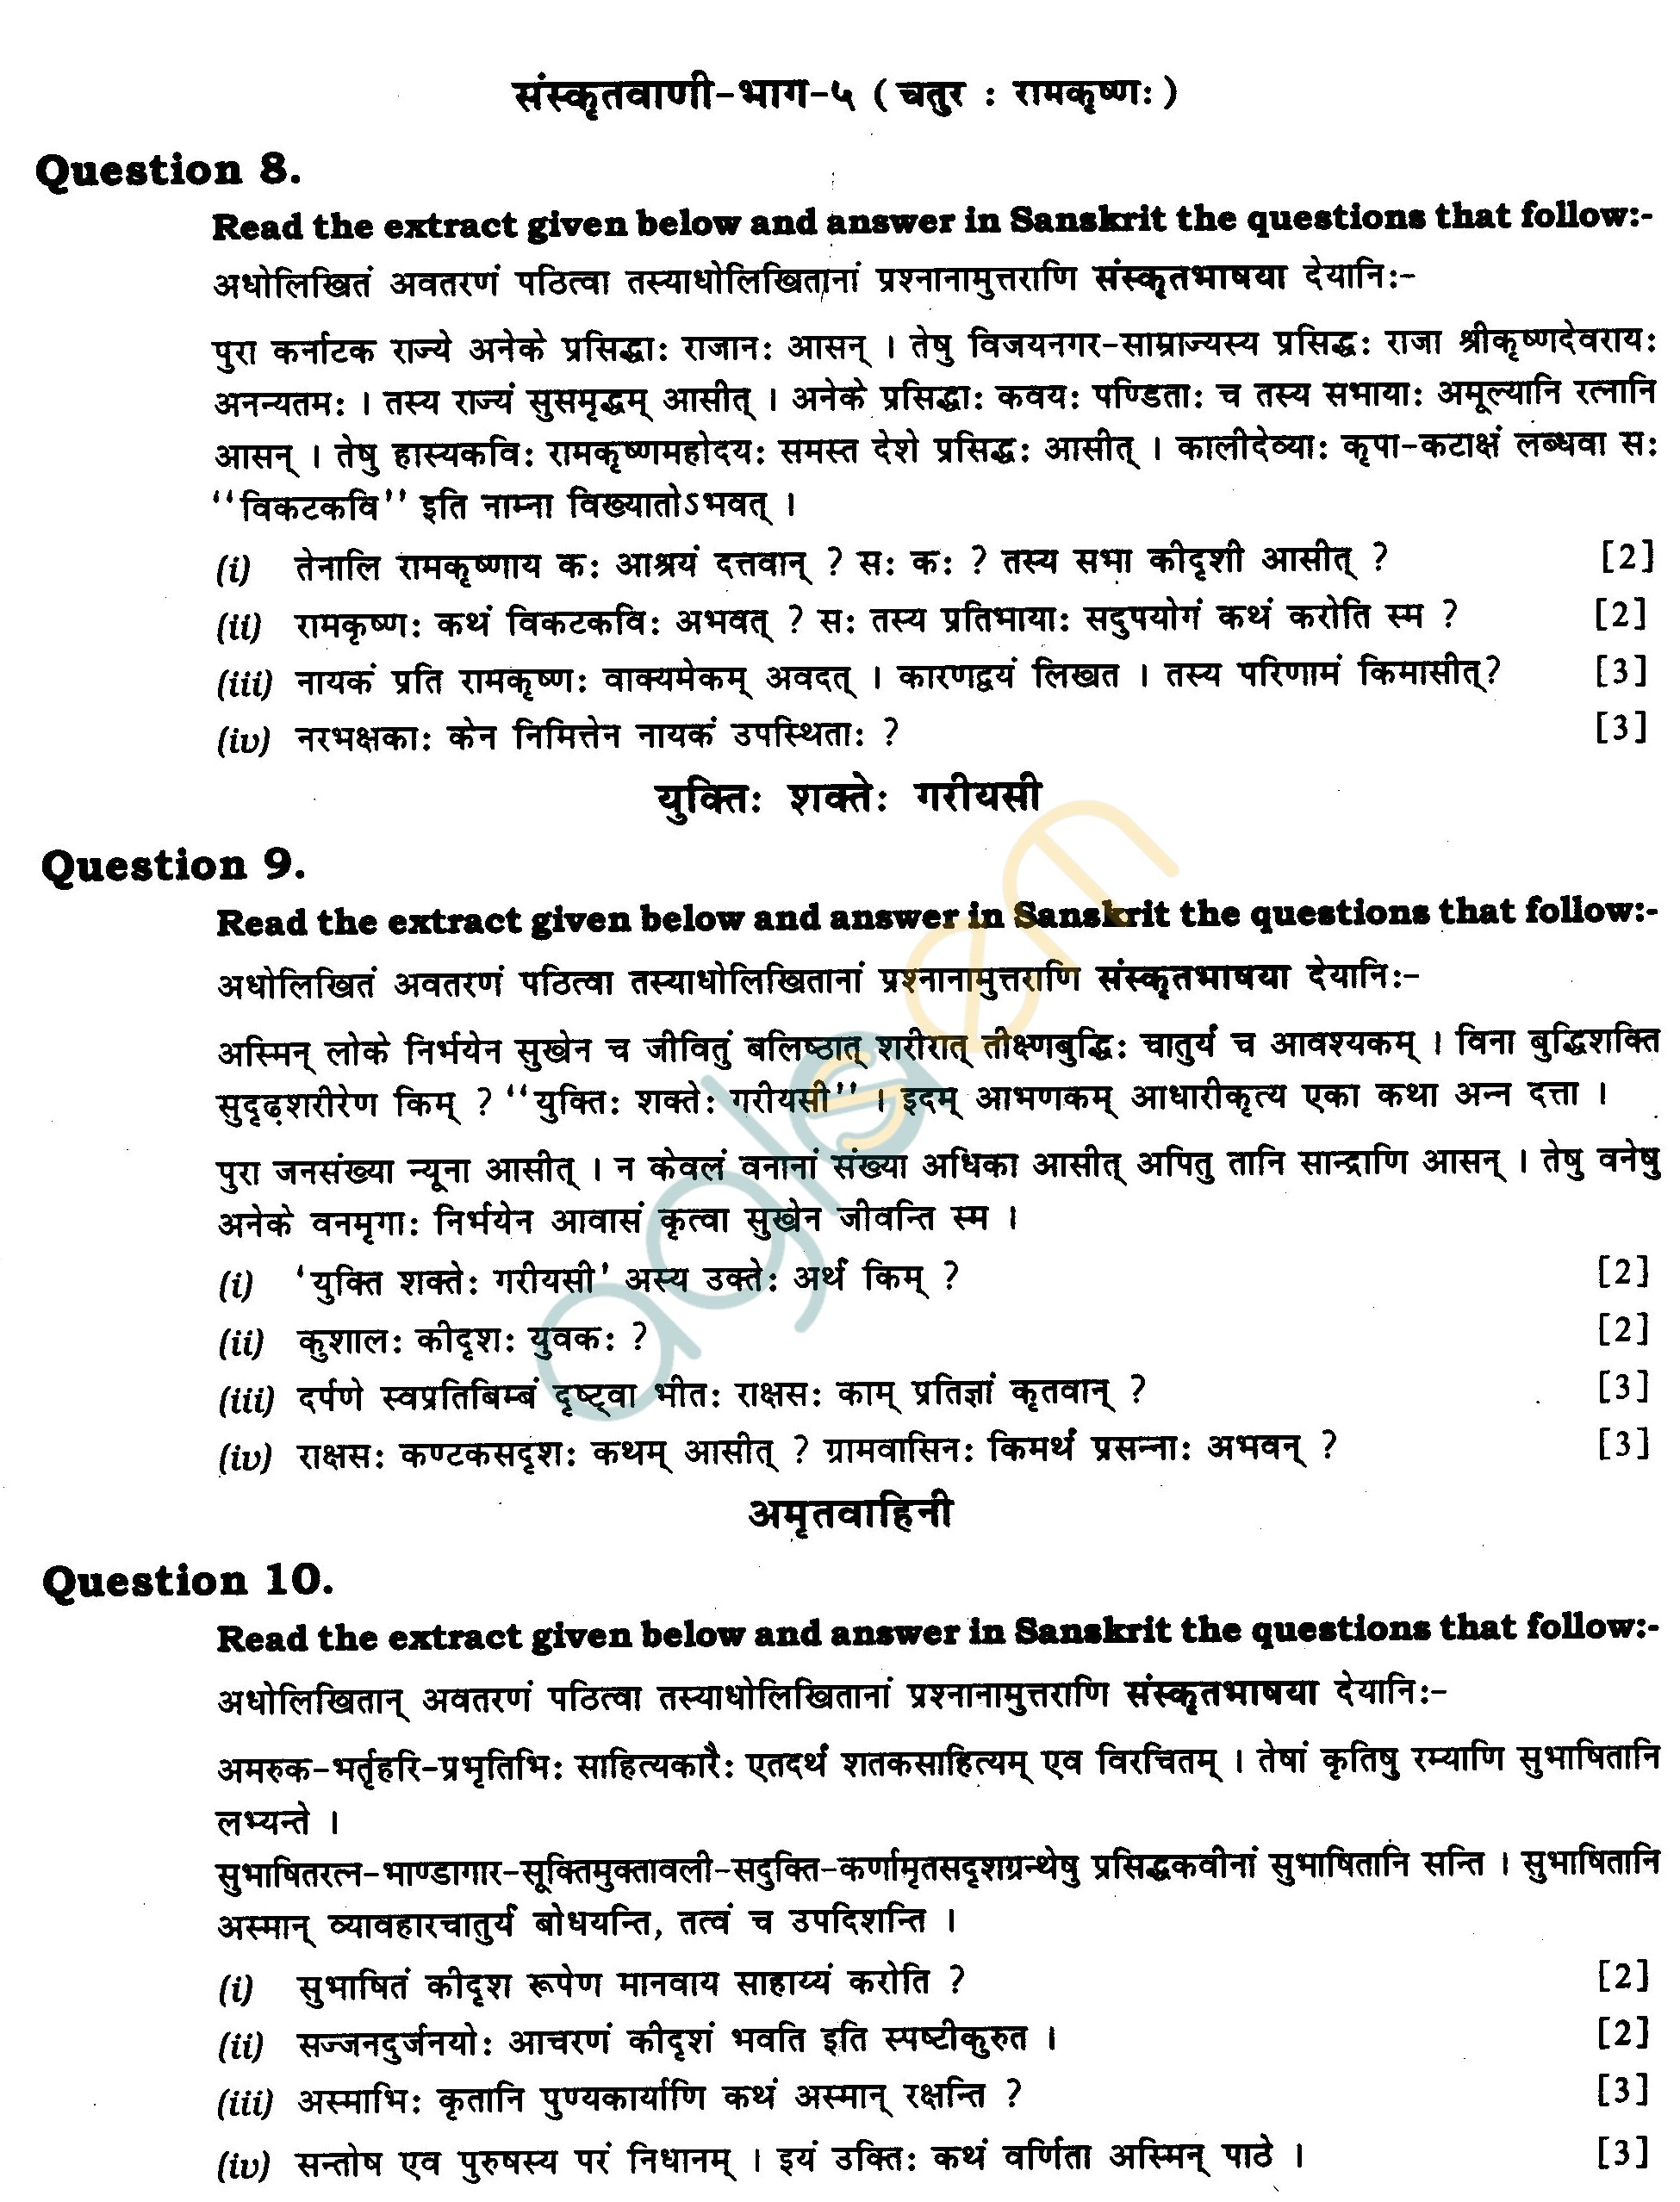 ICSE Class X Exam Question Papers 2011 Sanskrit